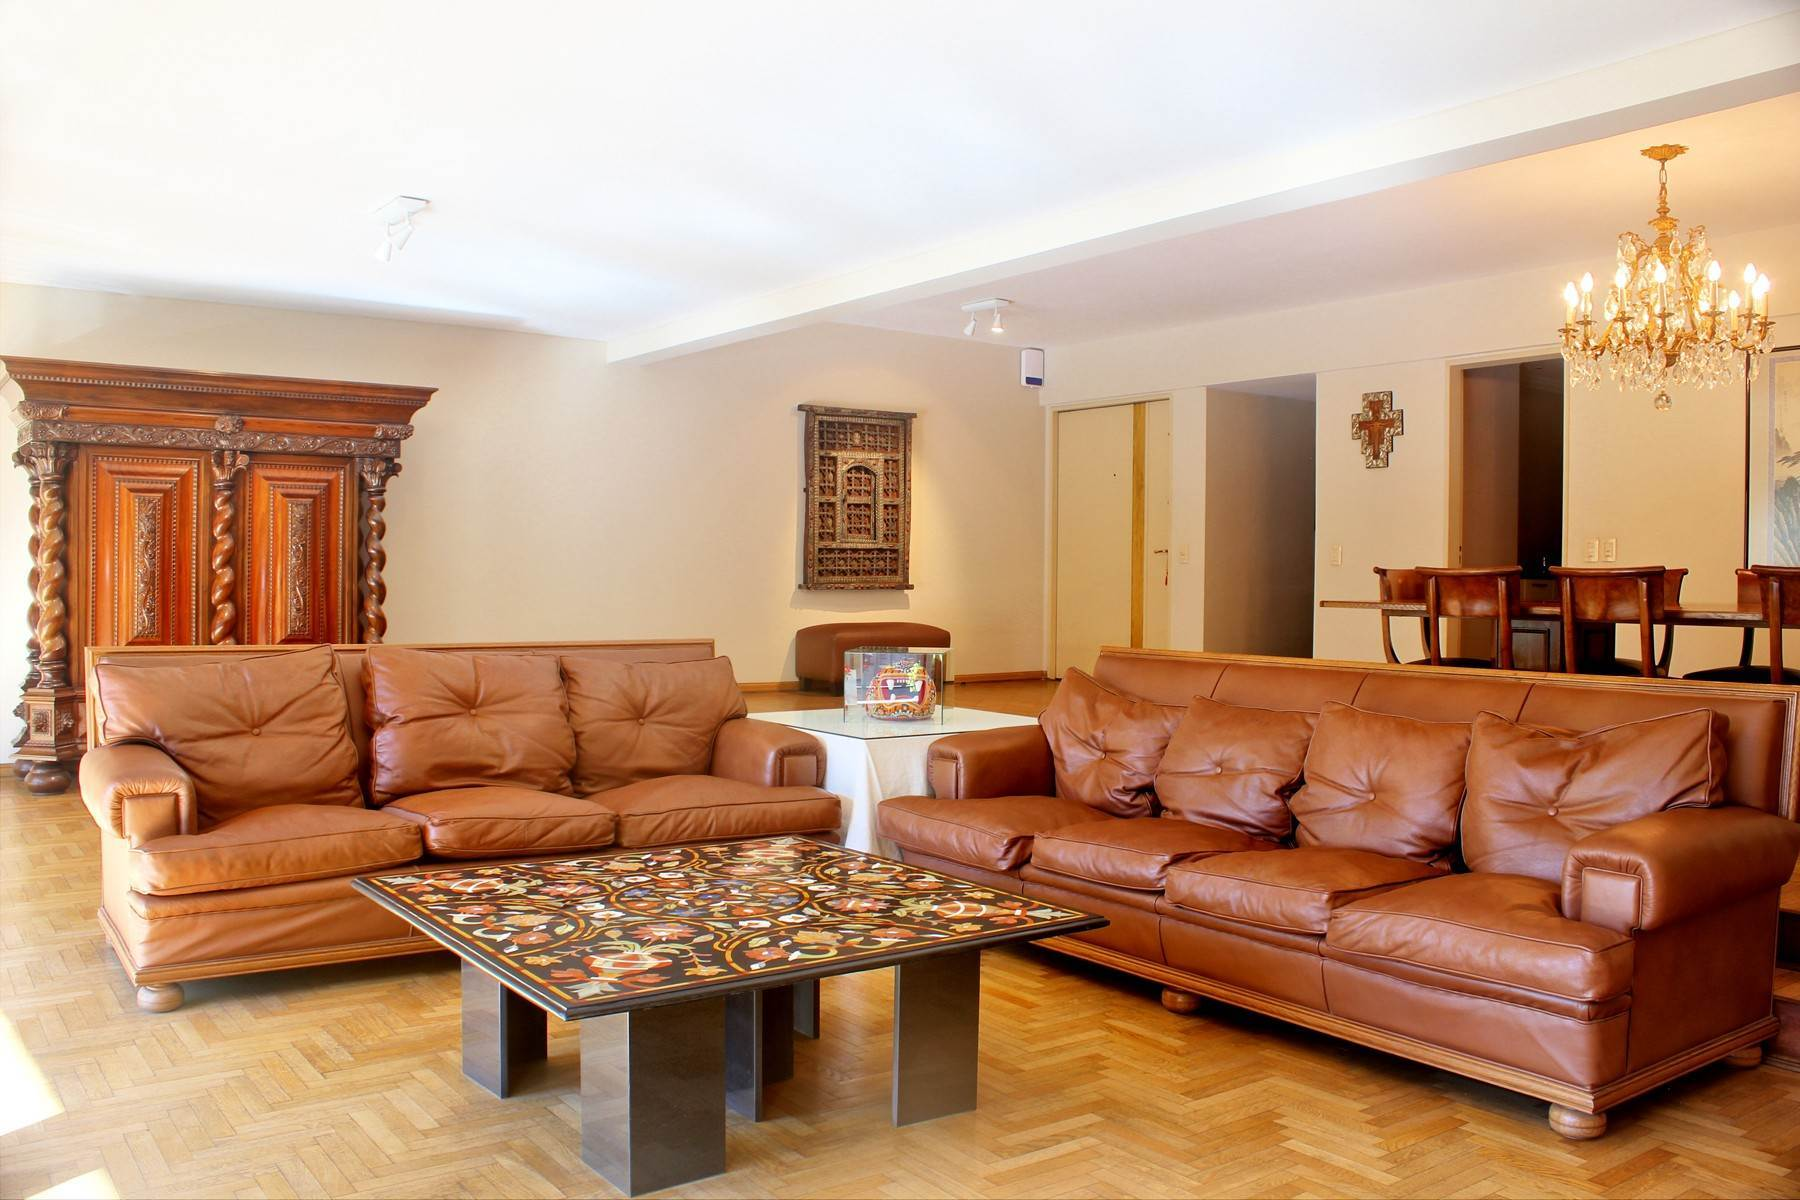 Apartments for Sale at Exceptional 478 sqm apartment Avenida Alvear 1900, Buenos Aires, Buenos Aires, 1129 Argentina